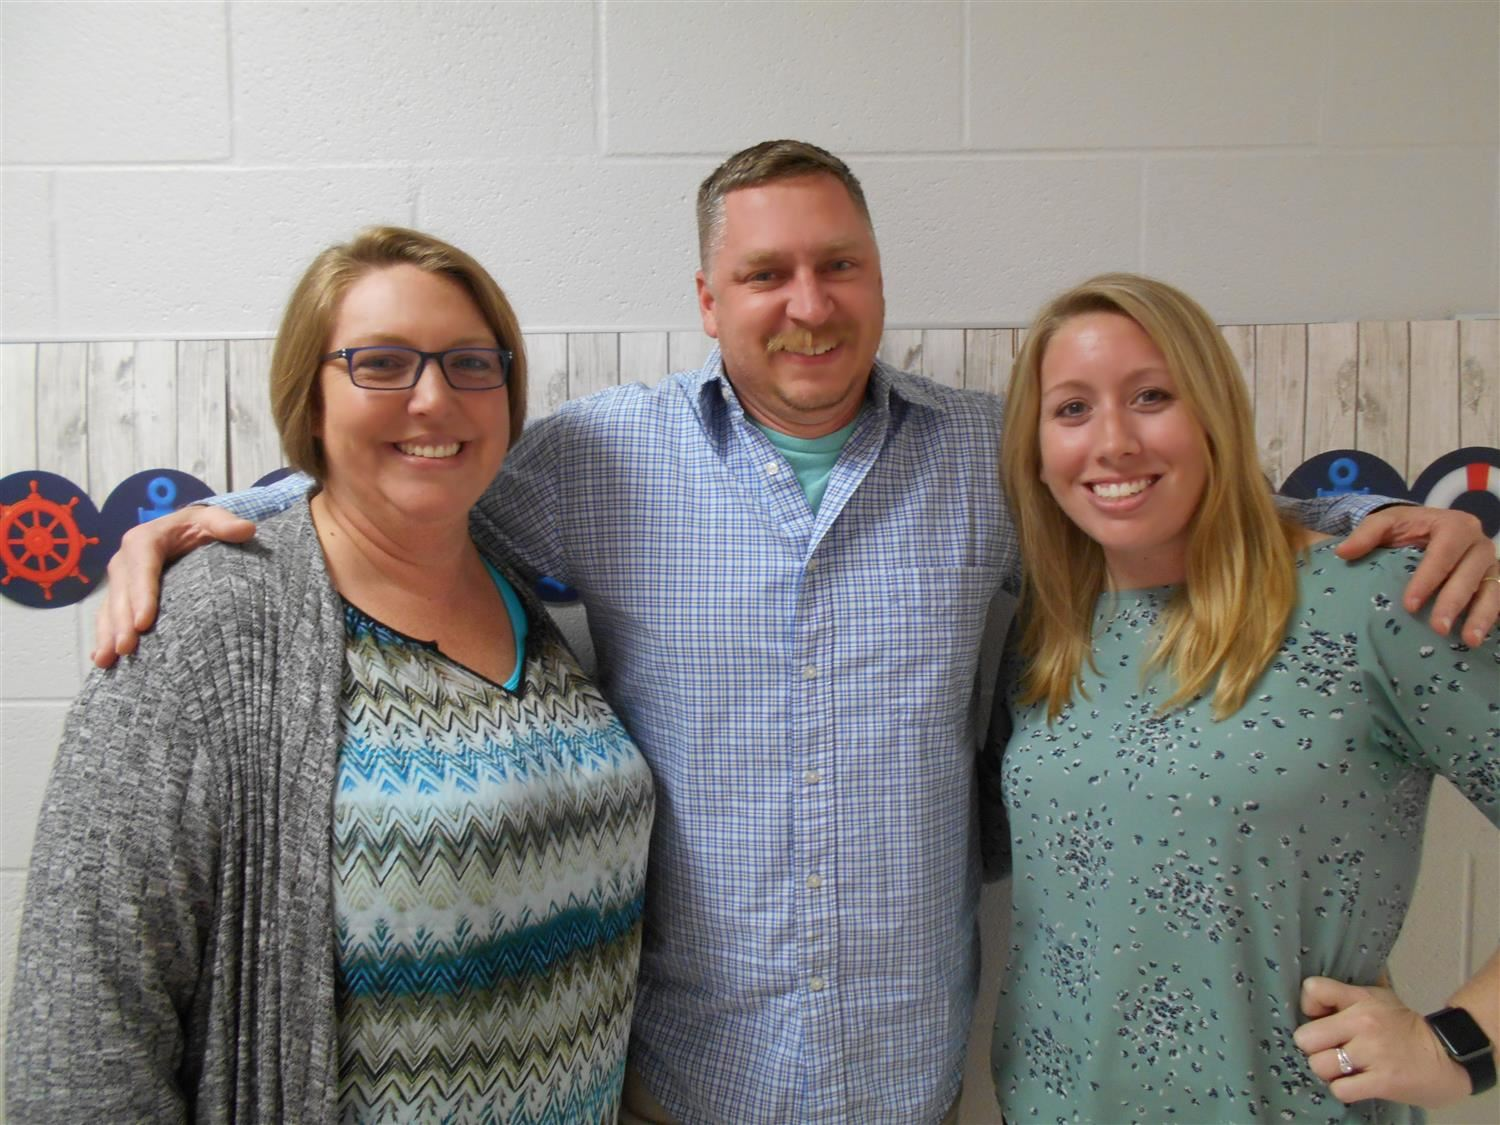 5th Grade Teachers - Mrs. Morgan, Mr. Carlson, and Mrs. Wise